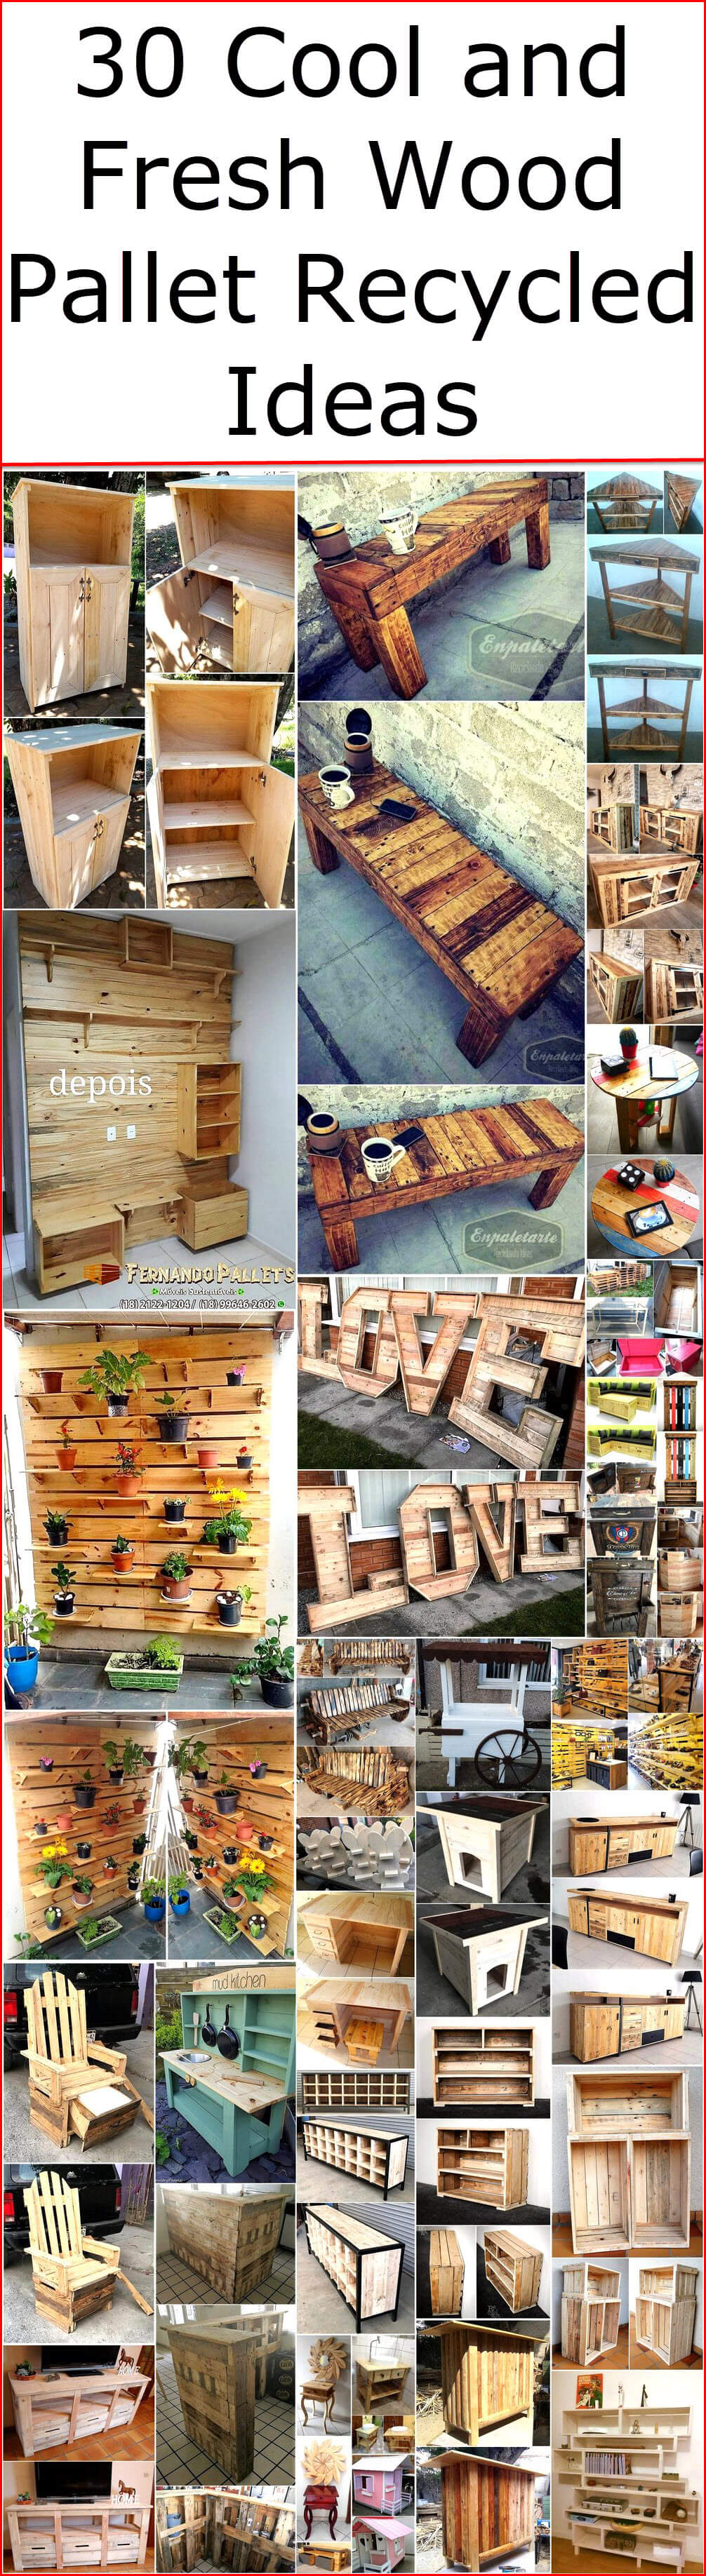 30 Cool and Fresh Wood Pallet Recycled Ideas